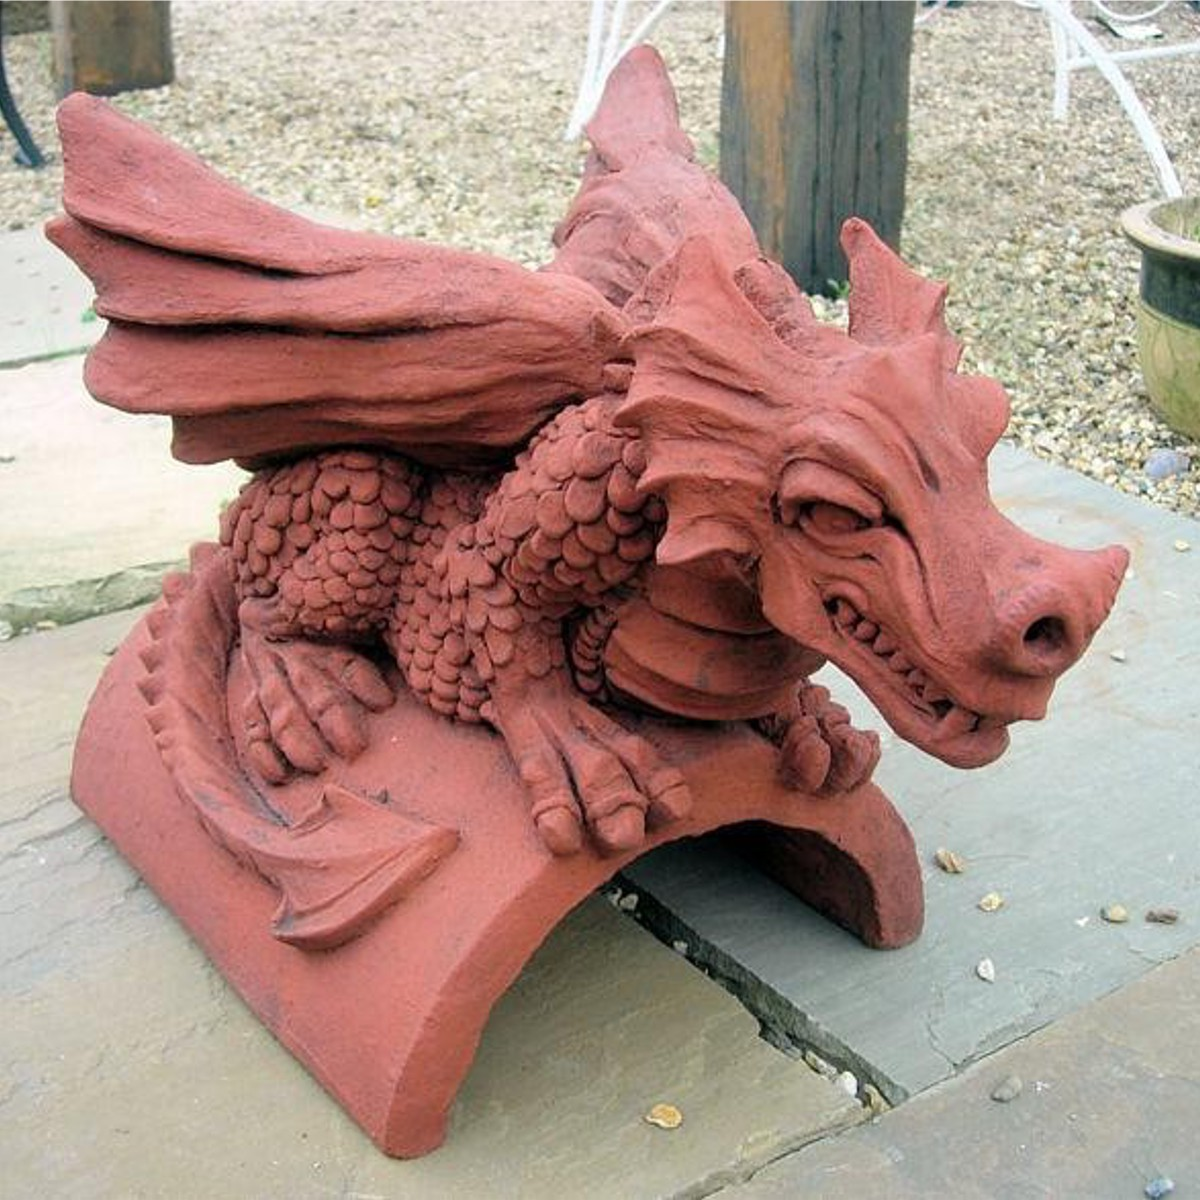 dragon finial sitting on indian stone